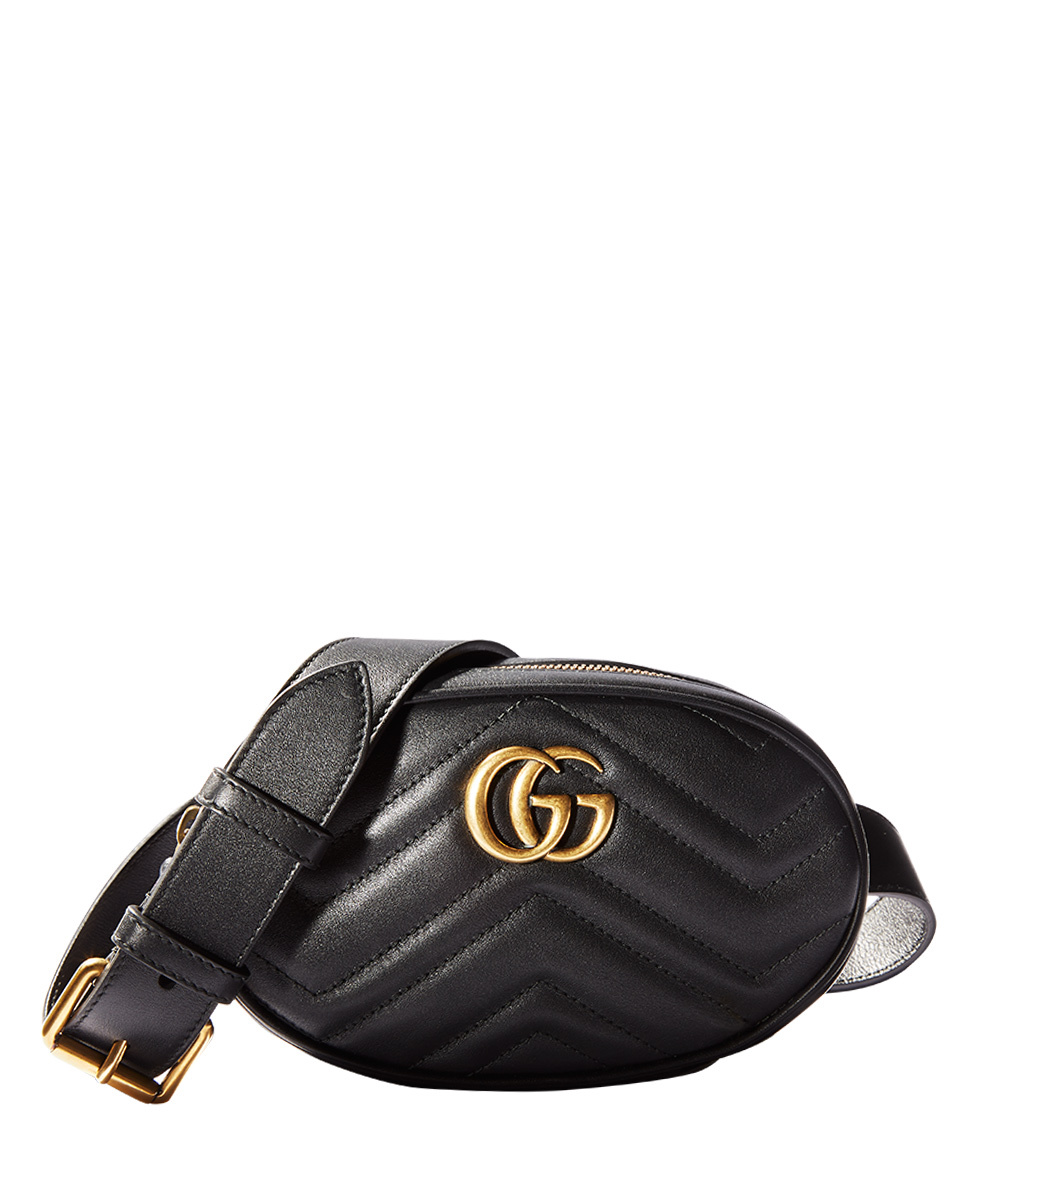 Gg Marmont Small Quilted Leather Belt Bag, Black